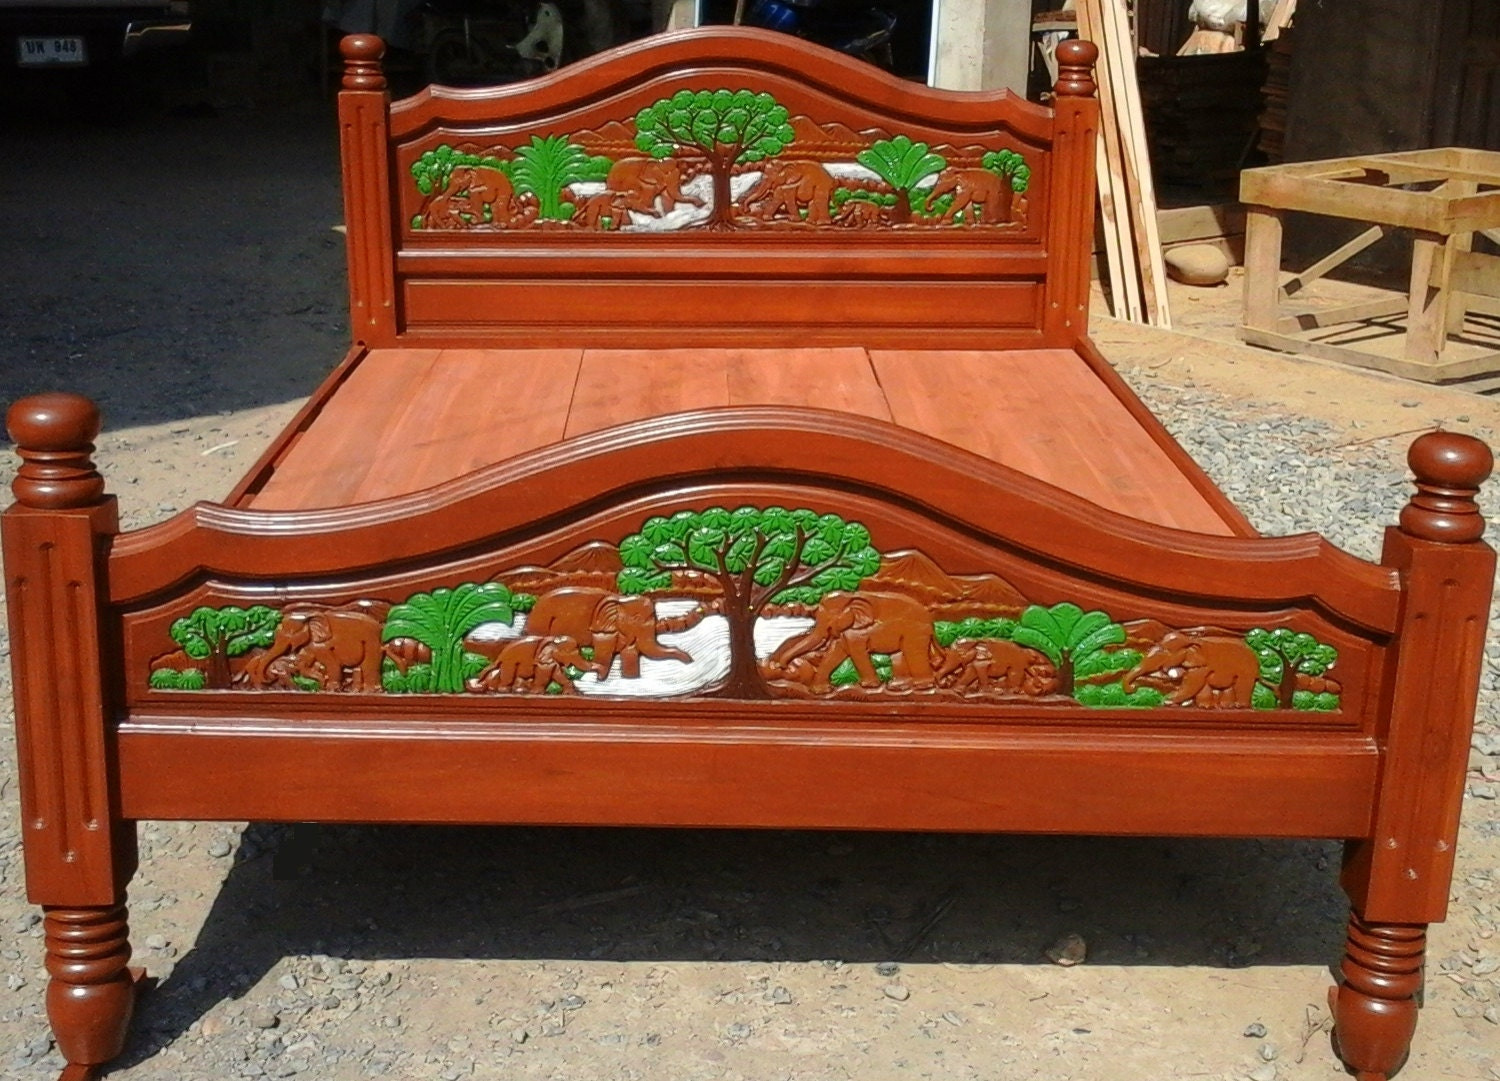 Superb img of Modern king & queen size carving teak wood platform bed by Edvena with #B24317 color and 1500x1081 pixels